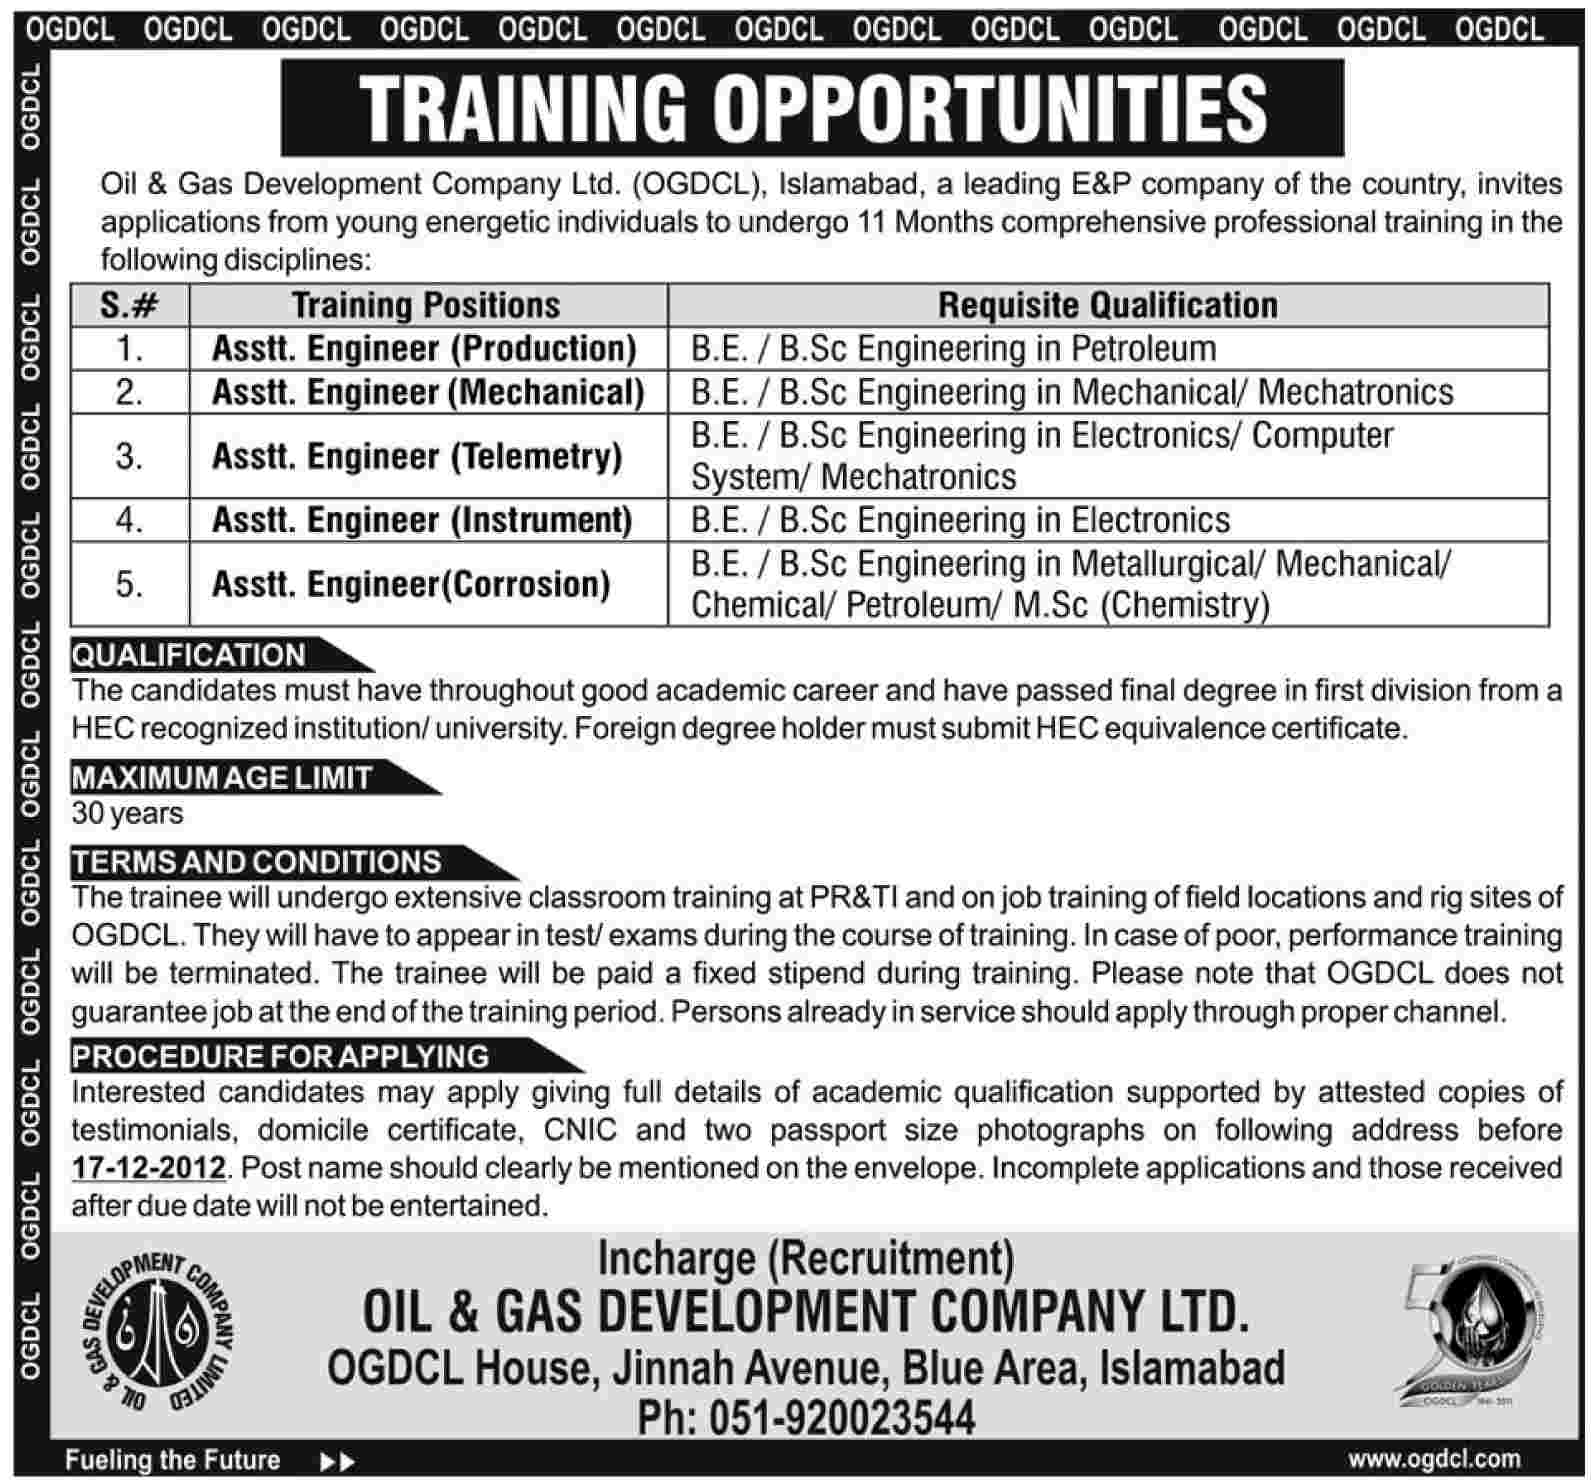 OGDCL Internships for Assistant Engineers